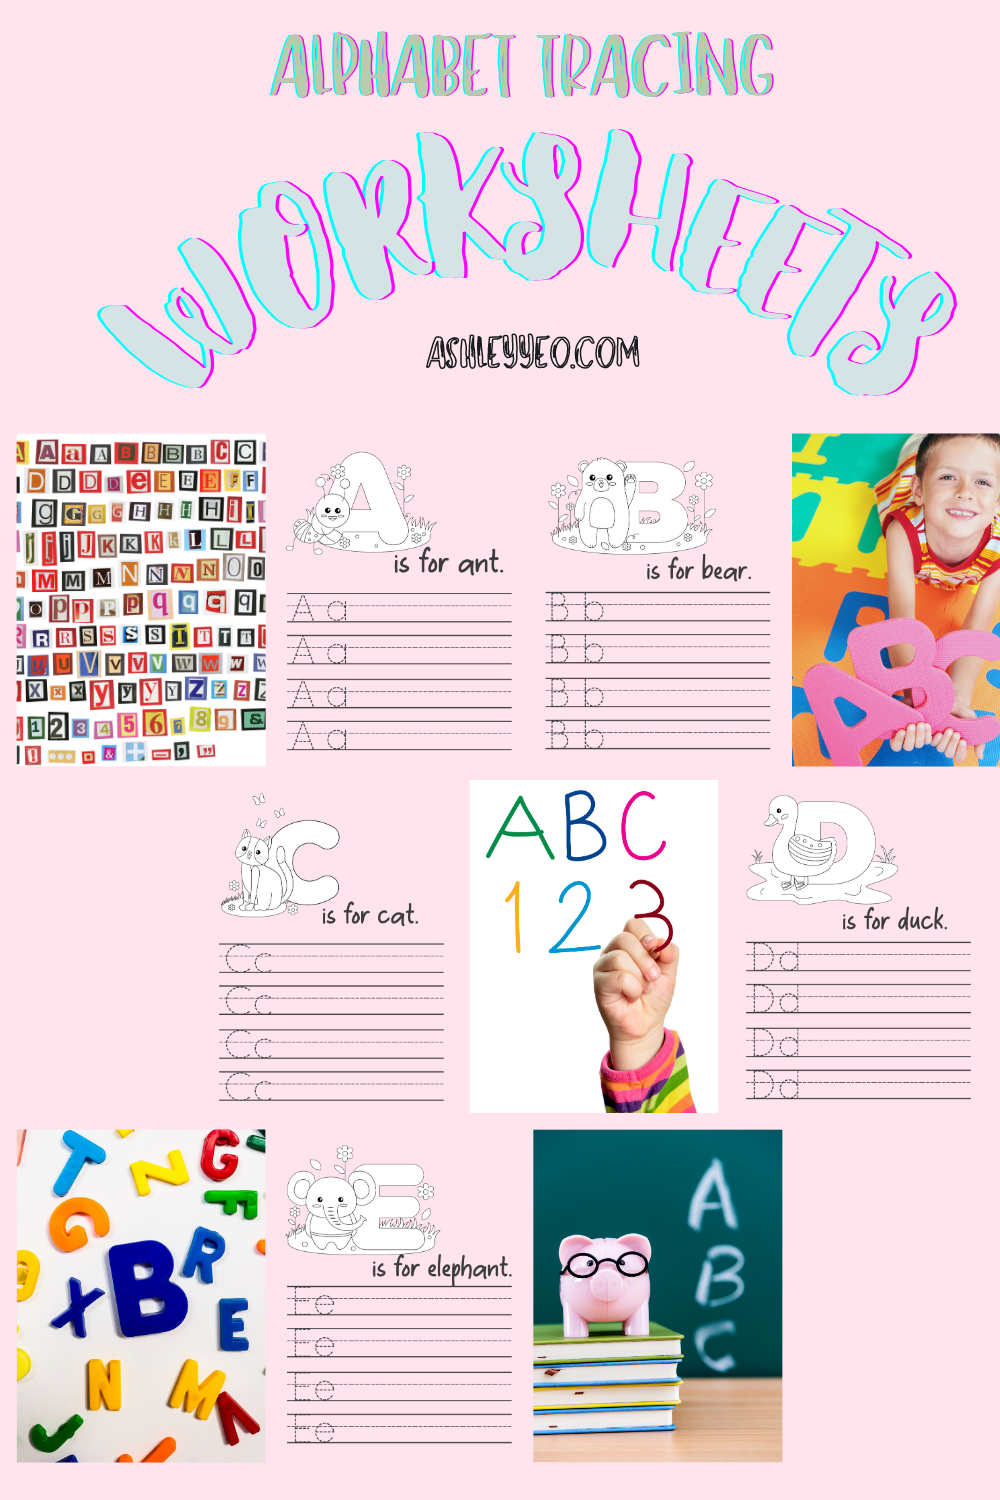 Alphabet Tracing Worksheets For Your Little Ones